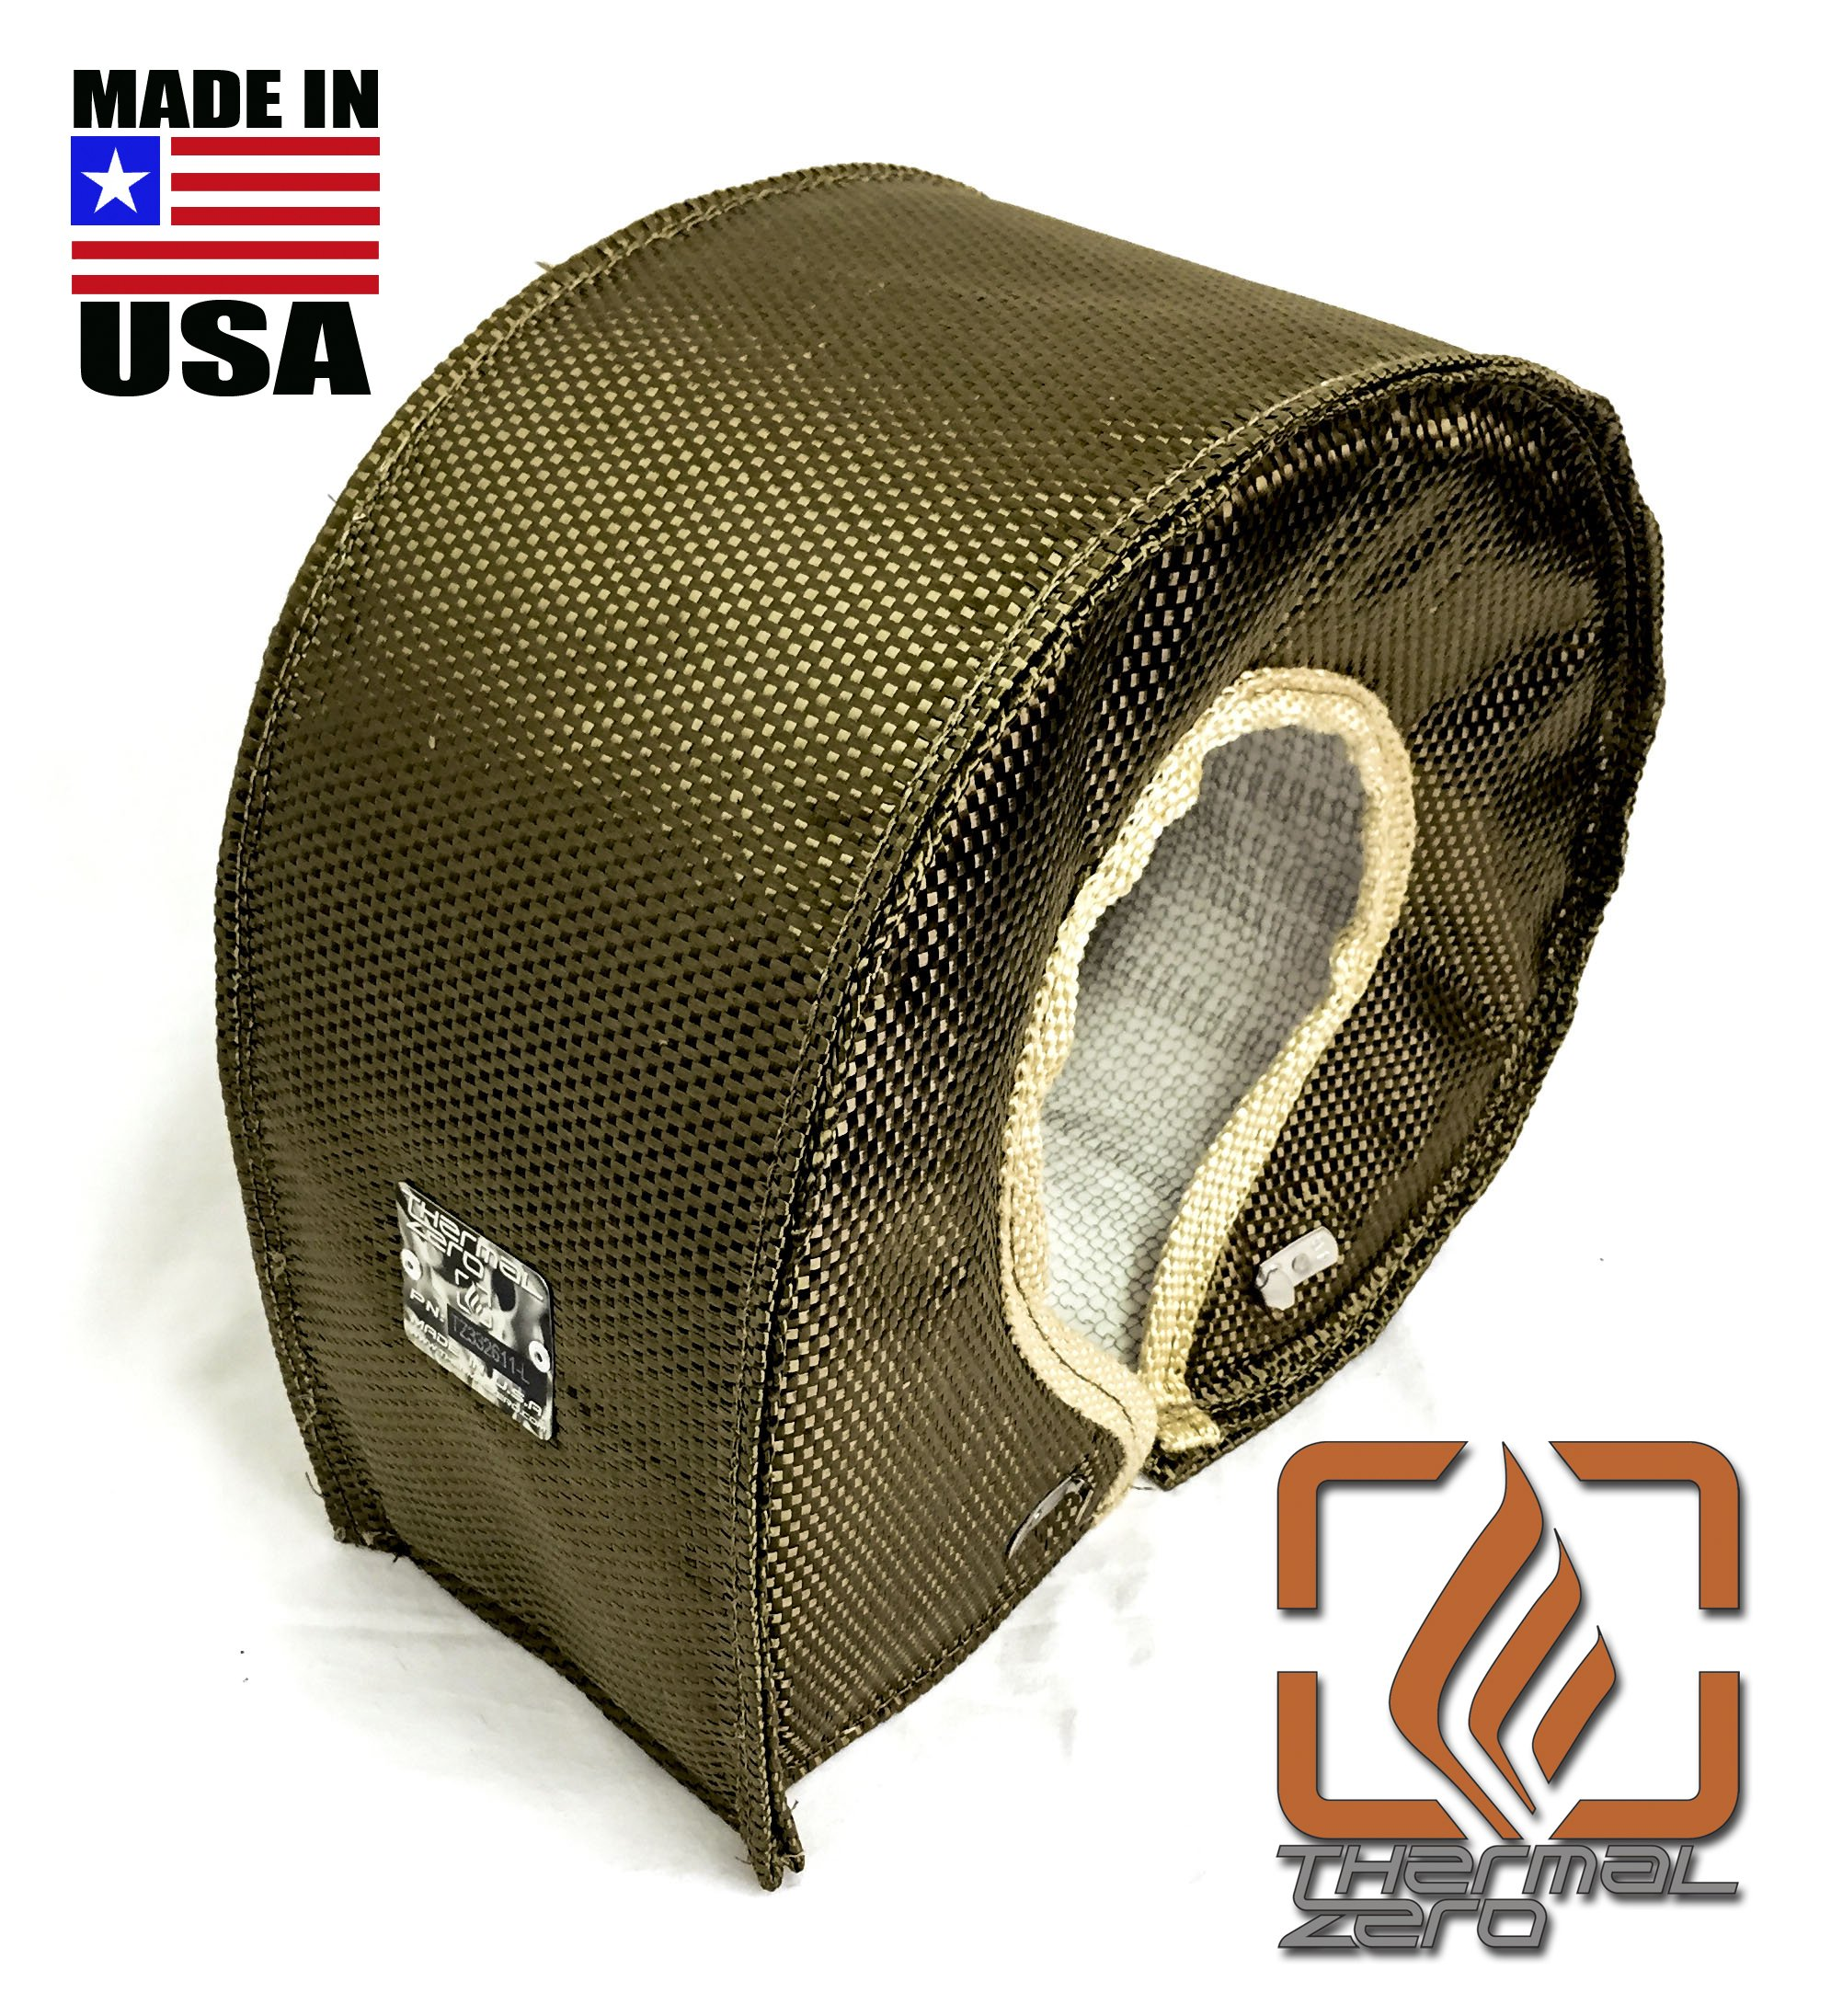 Thermal Zero LAVA TITANIUM UNIVERSAL T6 Turbo Blanket Holds 2400 degrees. MADE IN USA unlike the rest. Fits most T6 turbochargers including Garrett, Precision, Turbonetics DETROIT DIESEL, CUMMINS